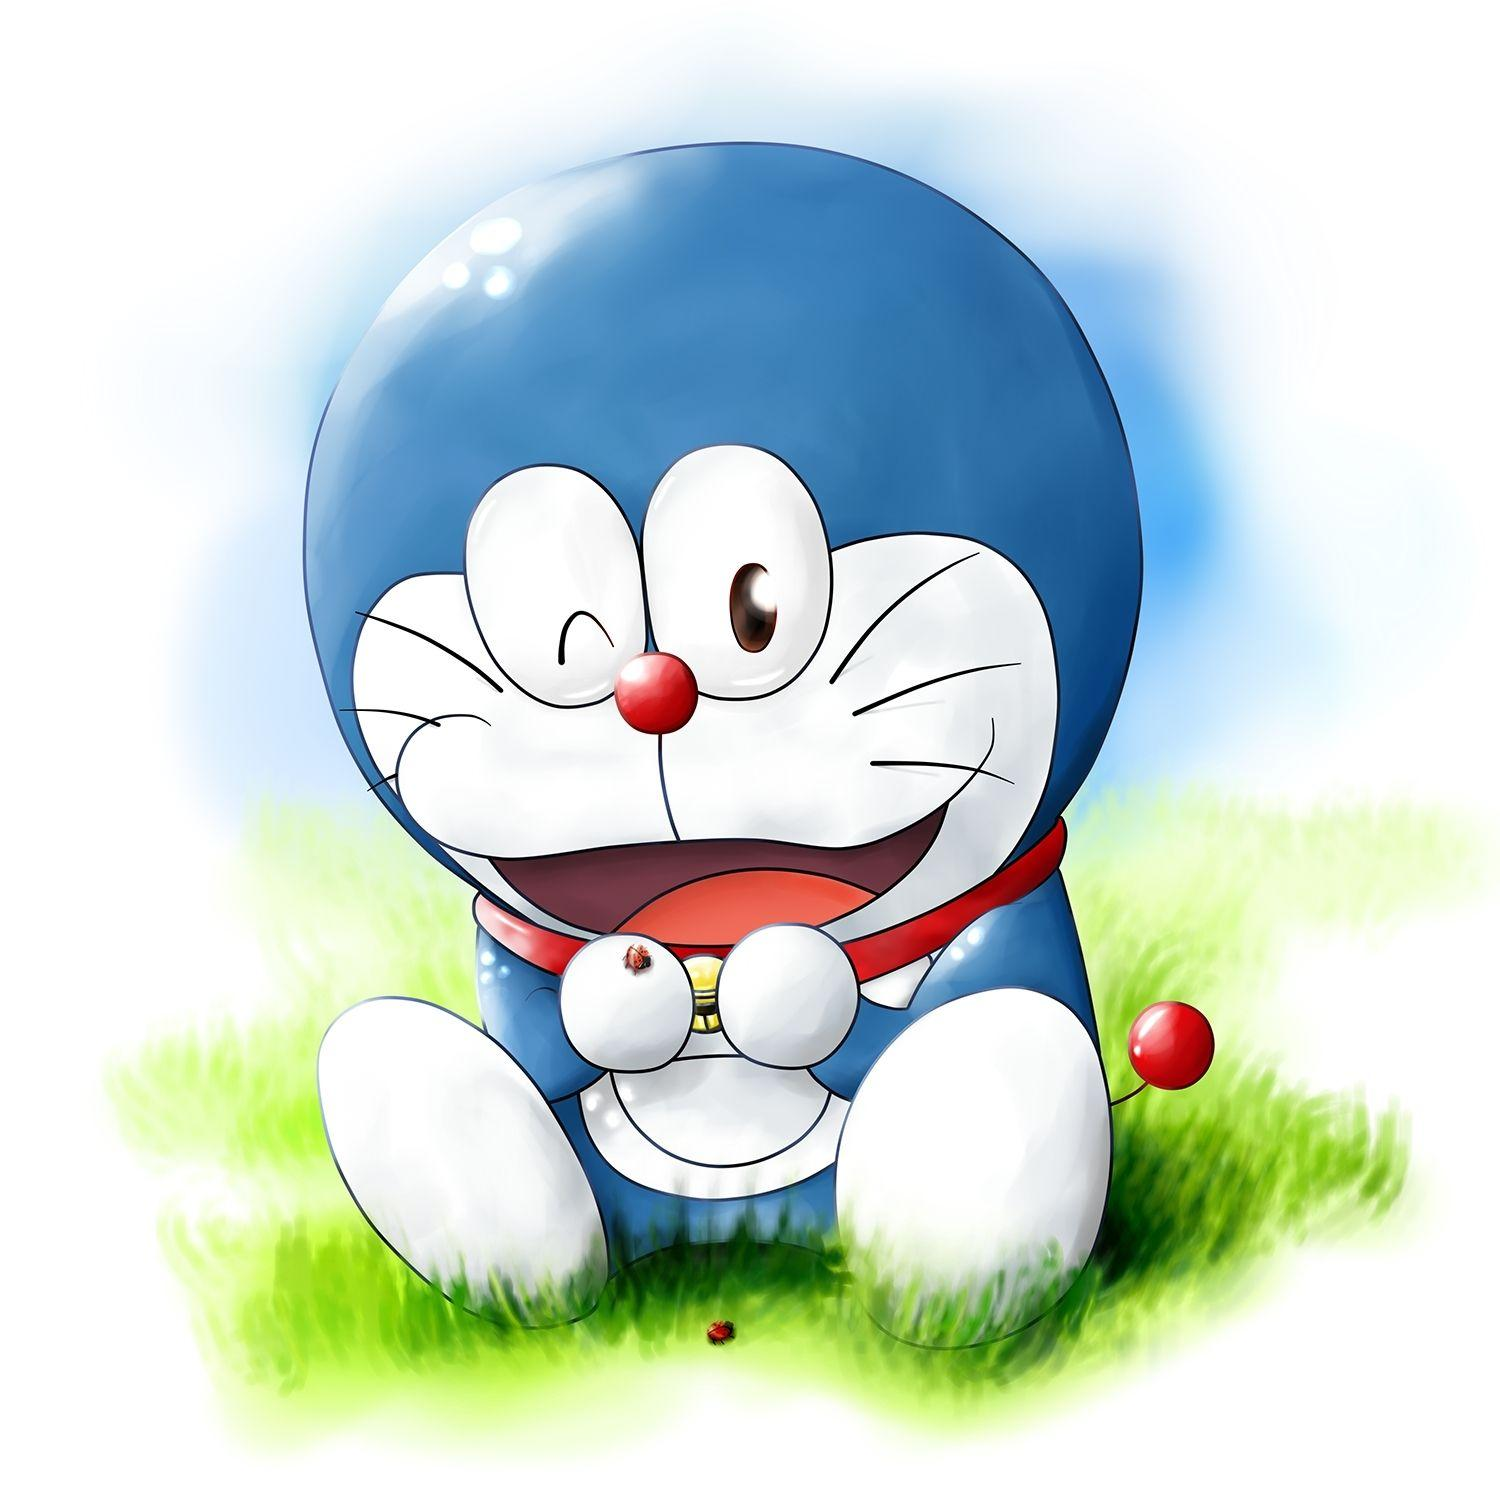 Doraemon Cartoon Wallpaper Hd Download